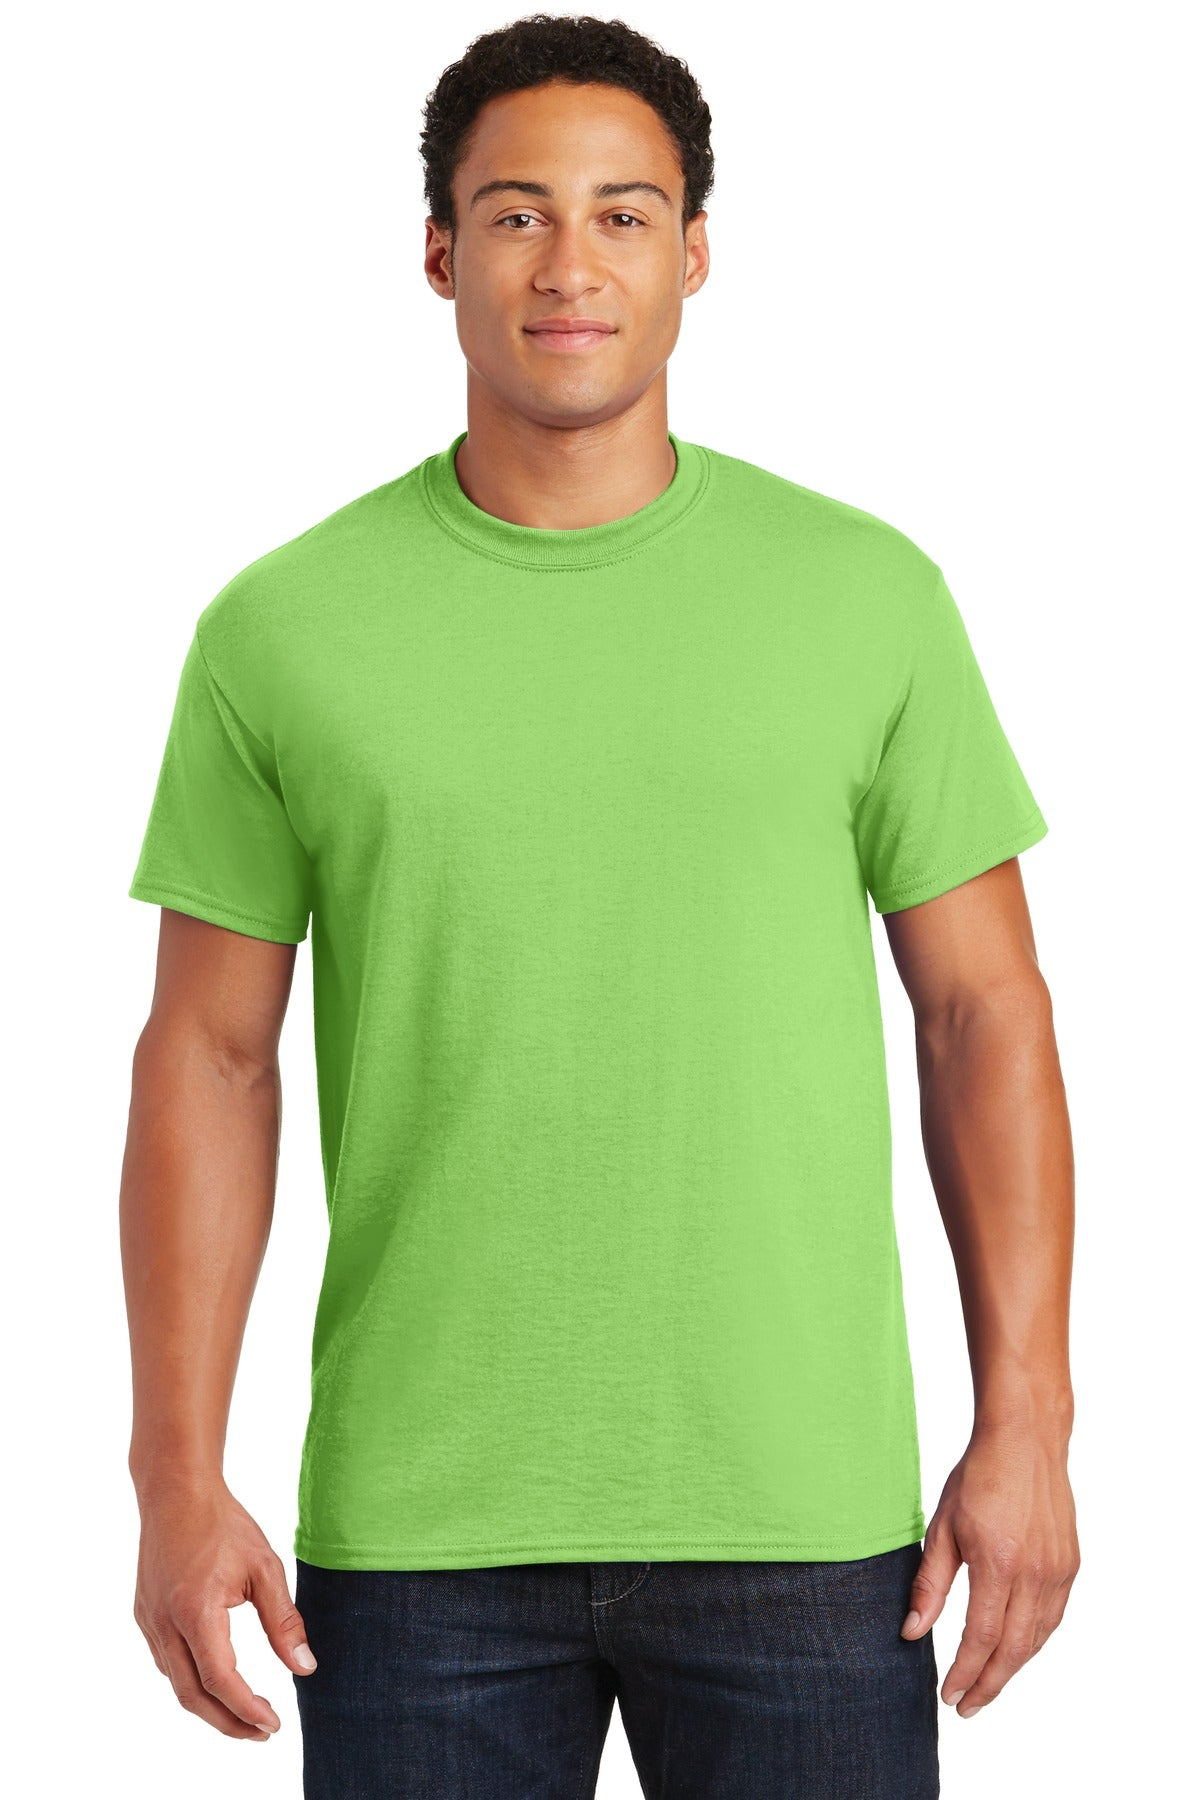 Lime Gildan DryBlend 50 Cotton/50 Poly T-Shirt.